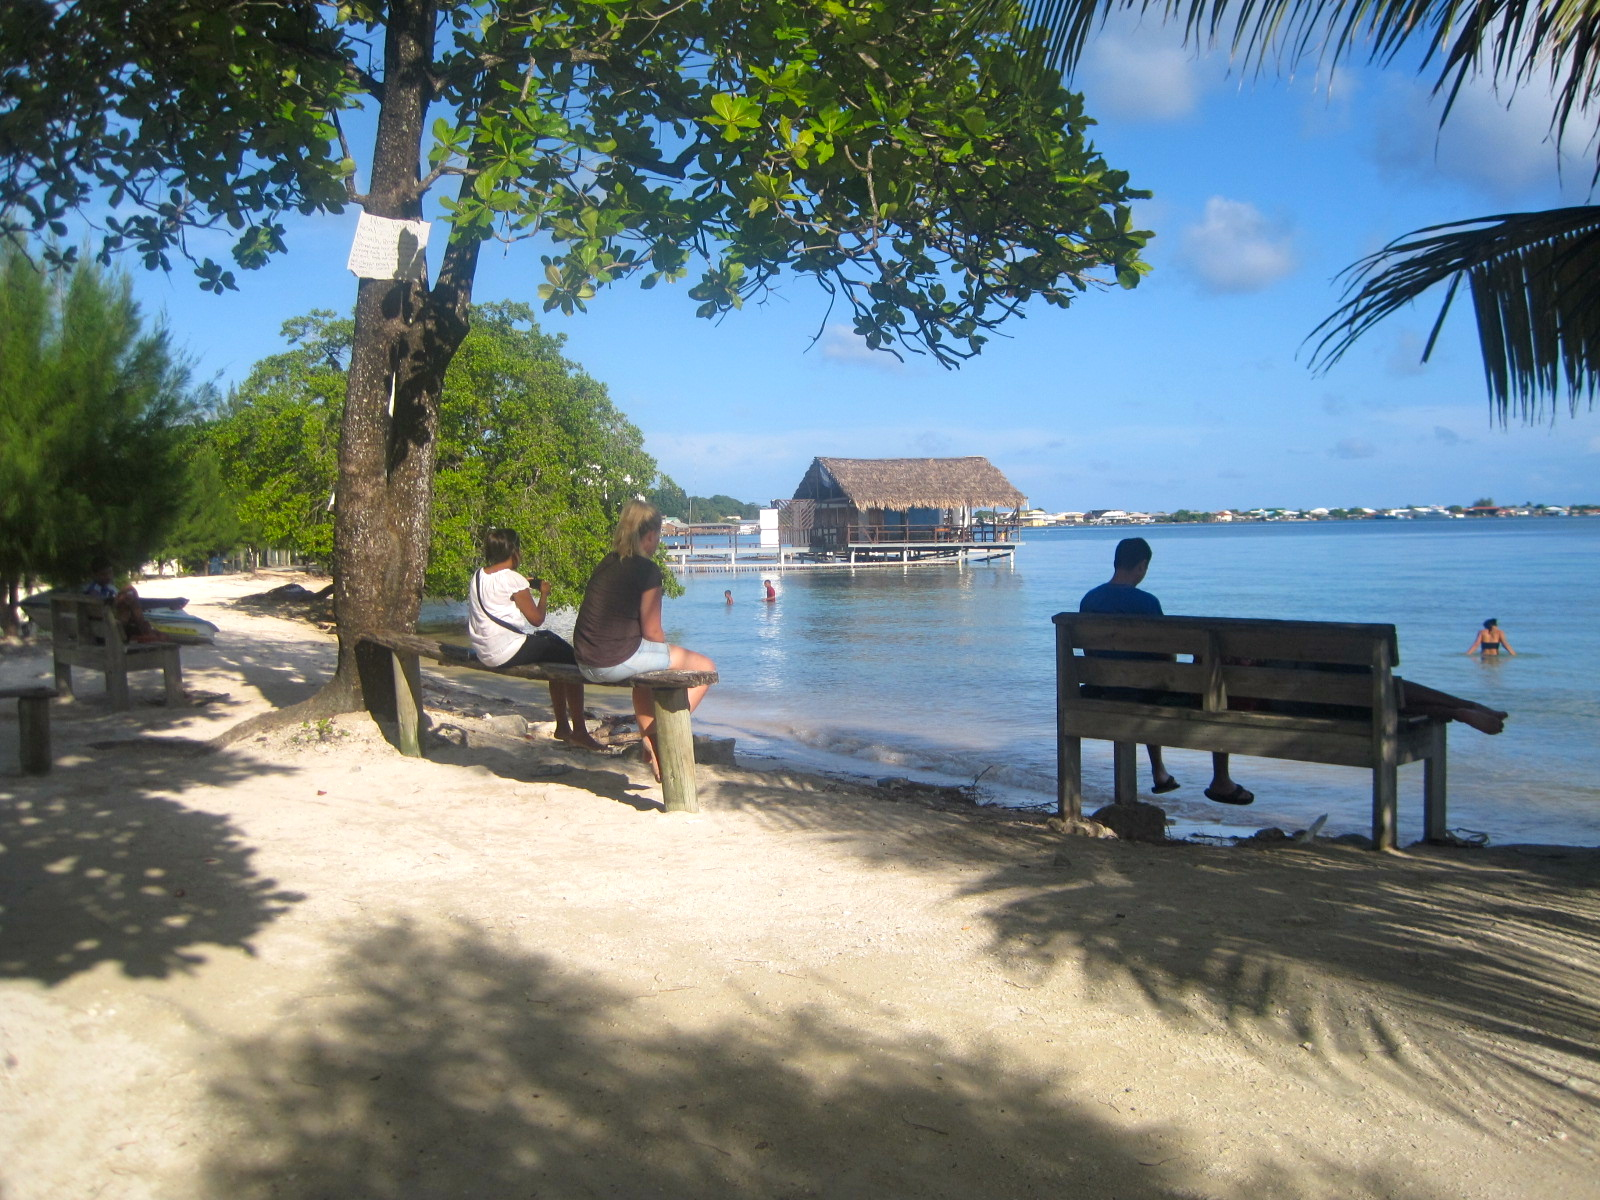 Best Beaches in Central America for Families: Enjoying the calm waters of Utila, Honduras